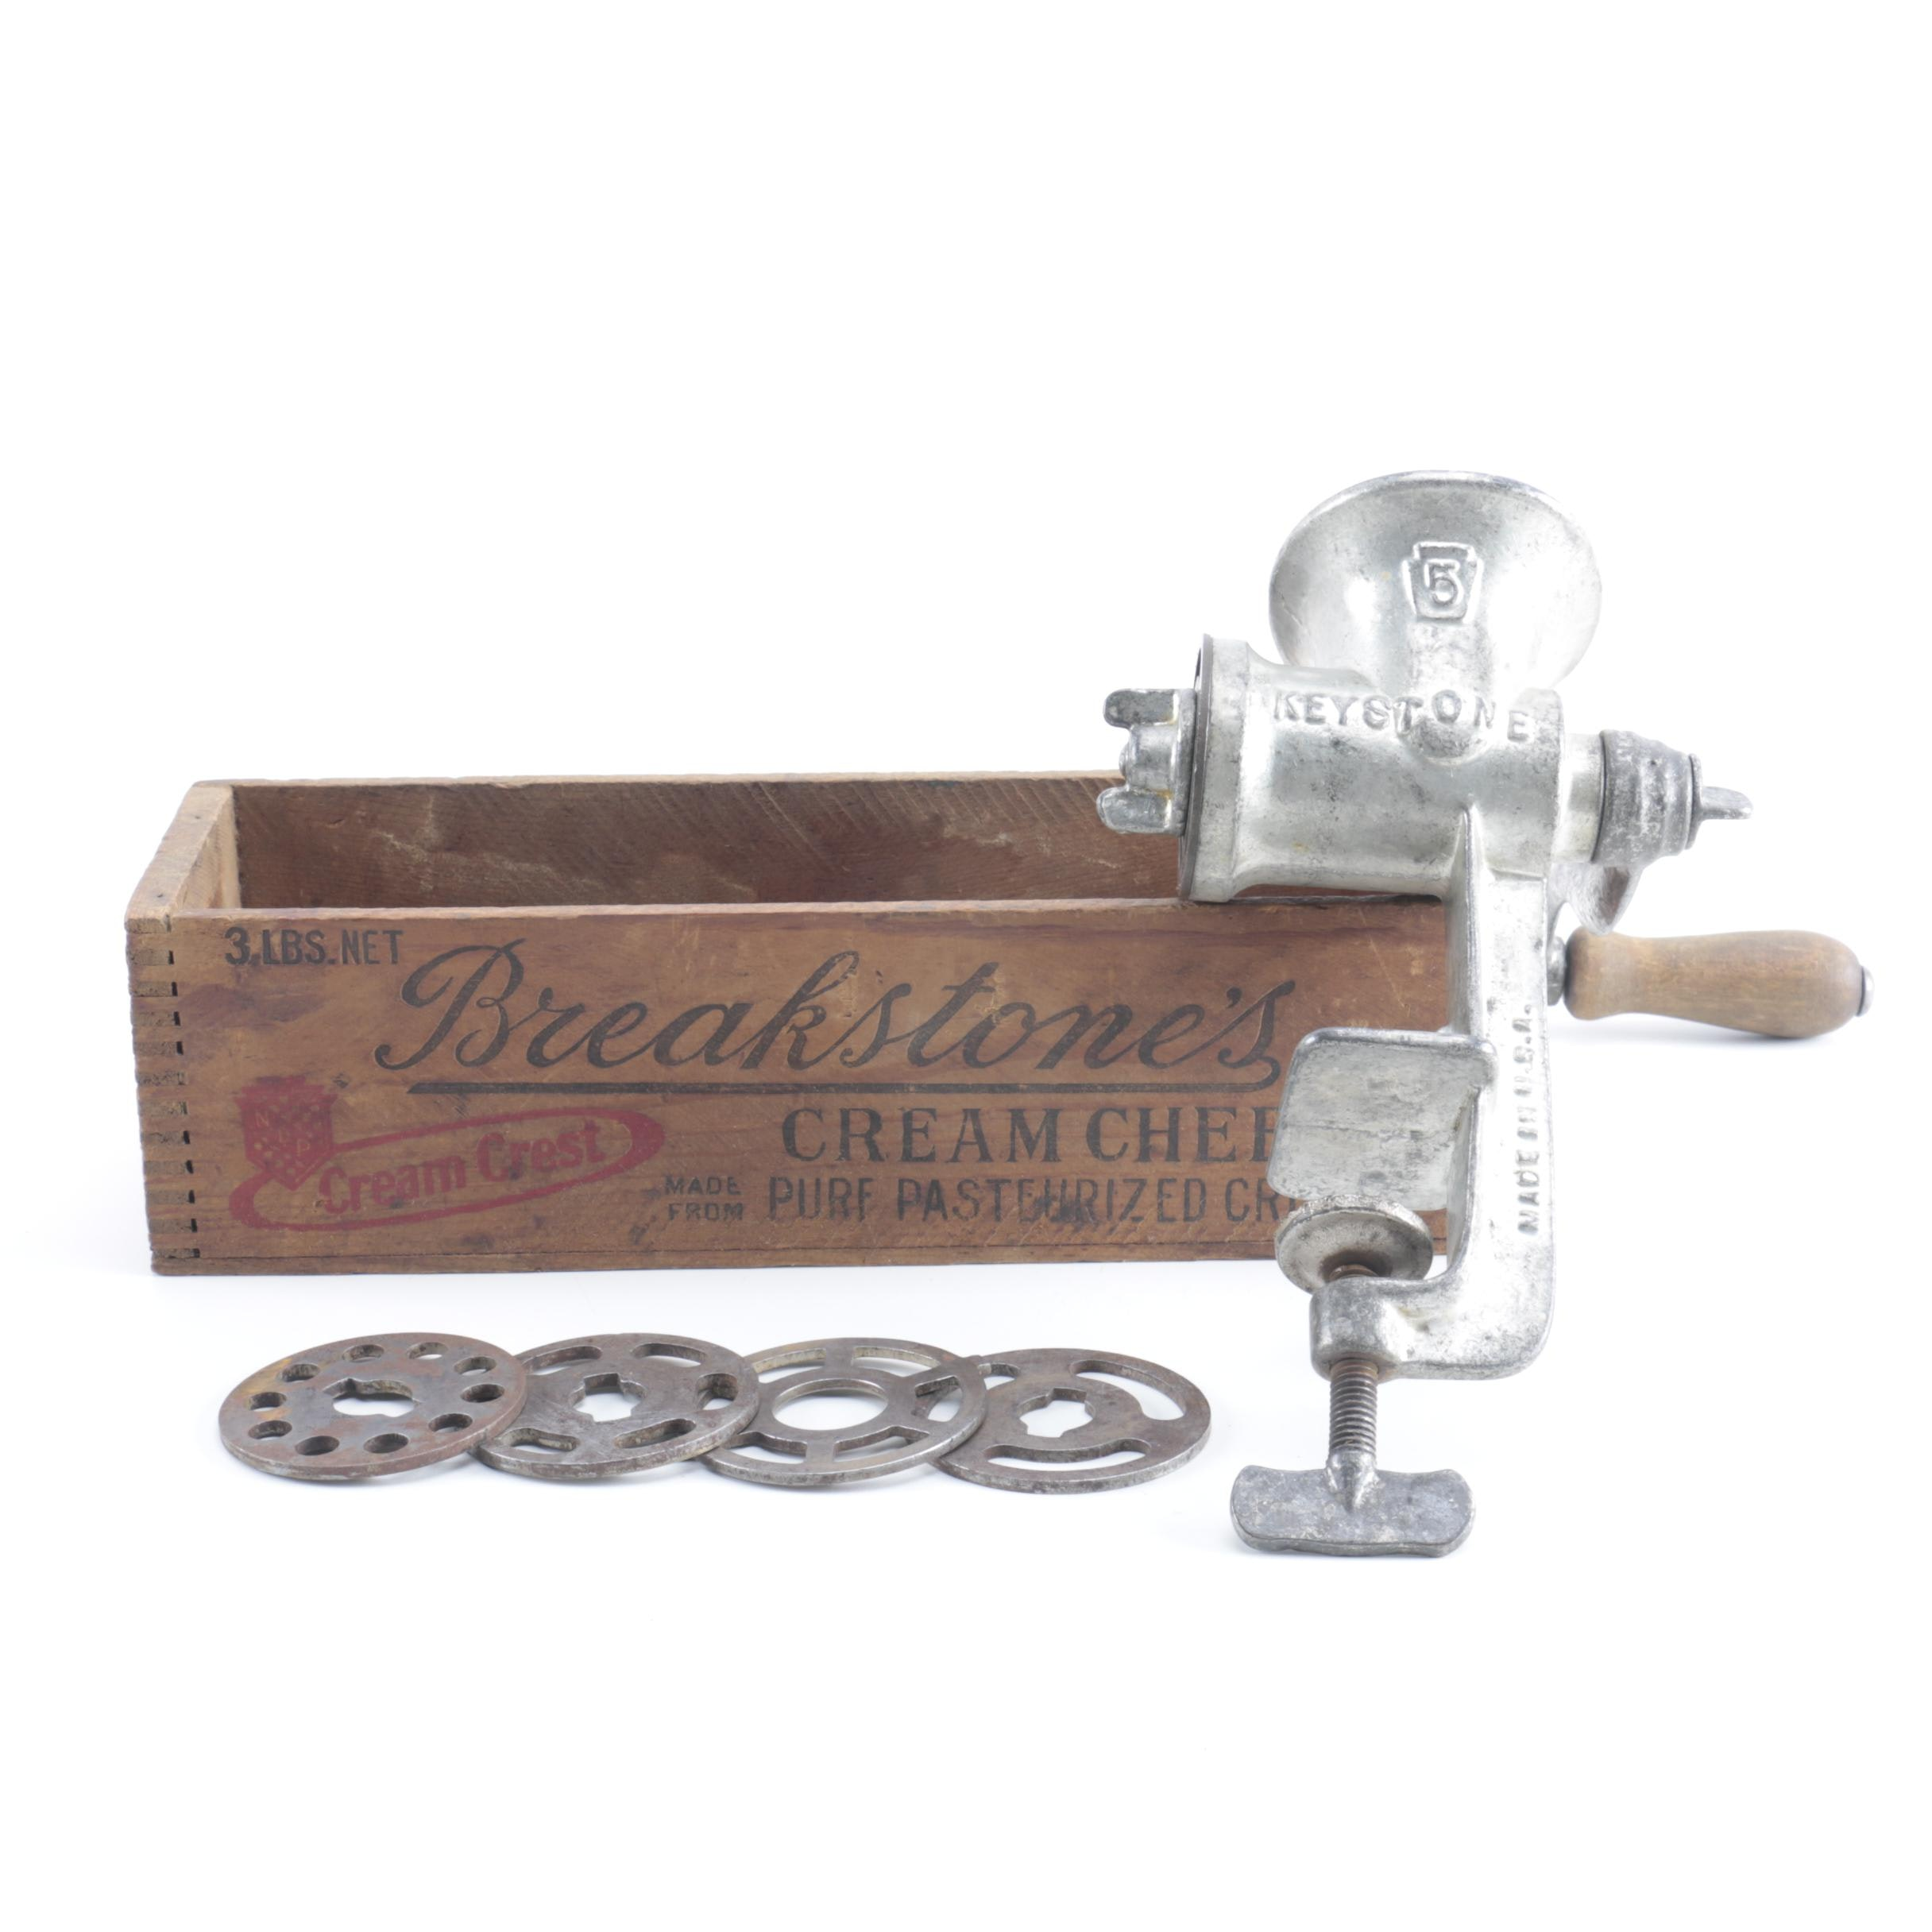 Keystone Meat Grinder With Breakstone's Wooden Crate